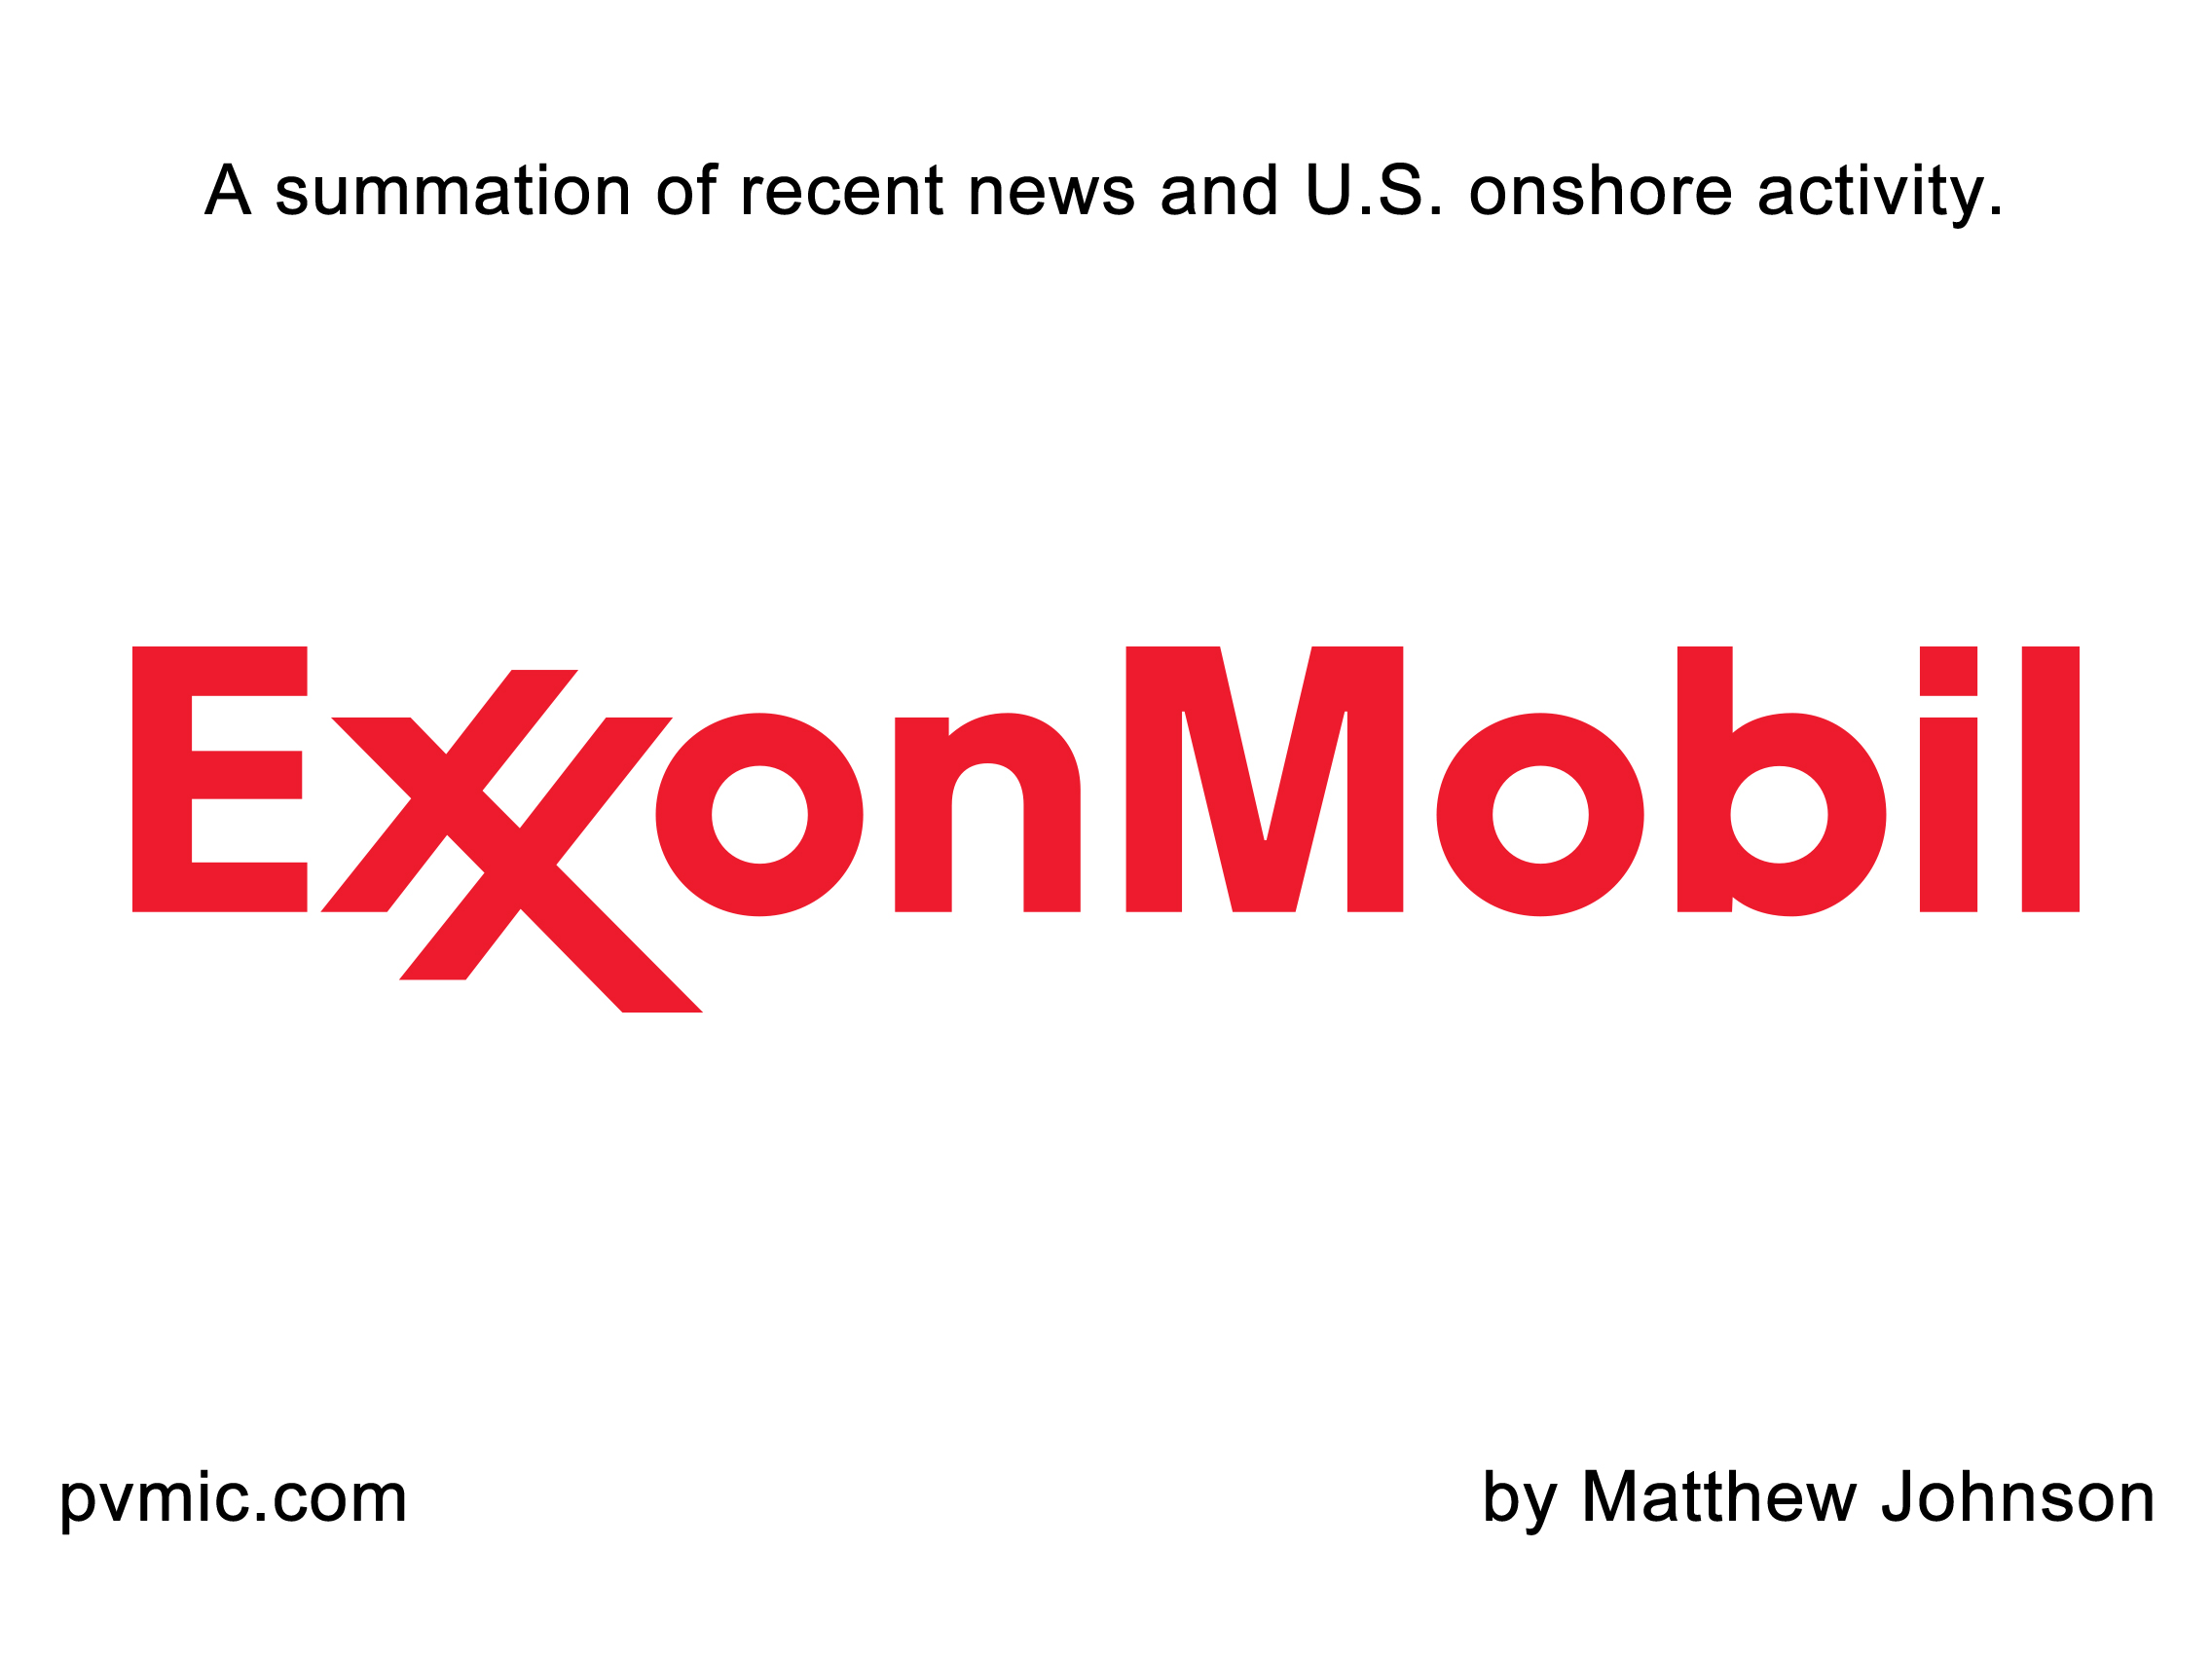 Does #Exxon Know The Value of Its Assets?